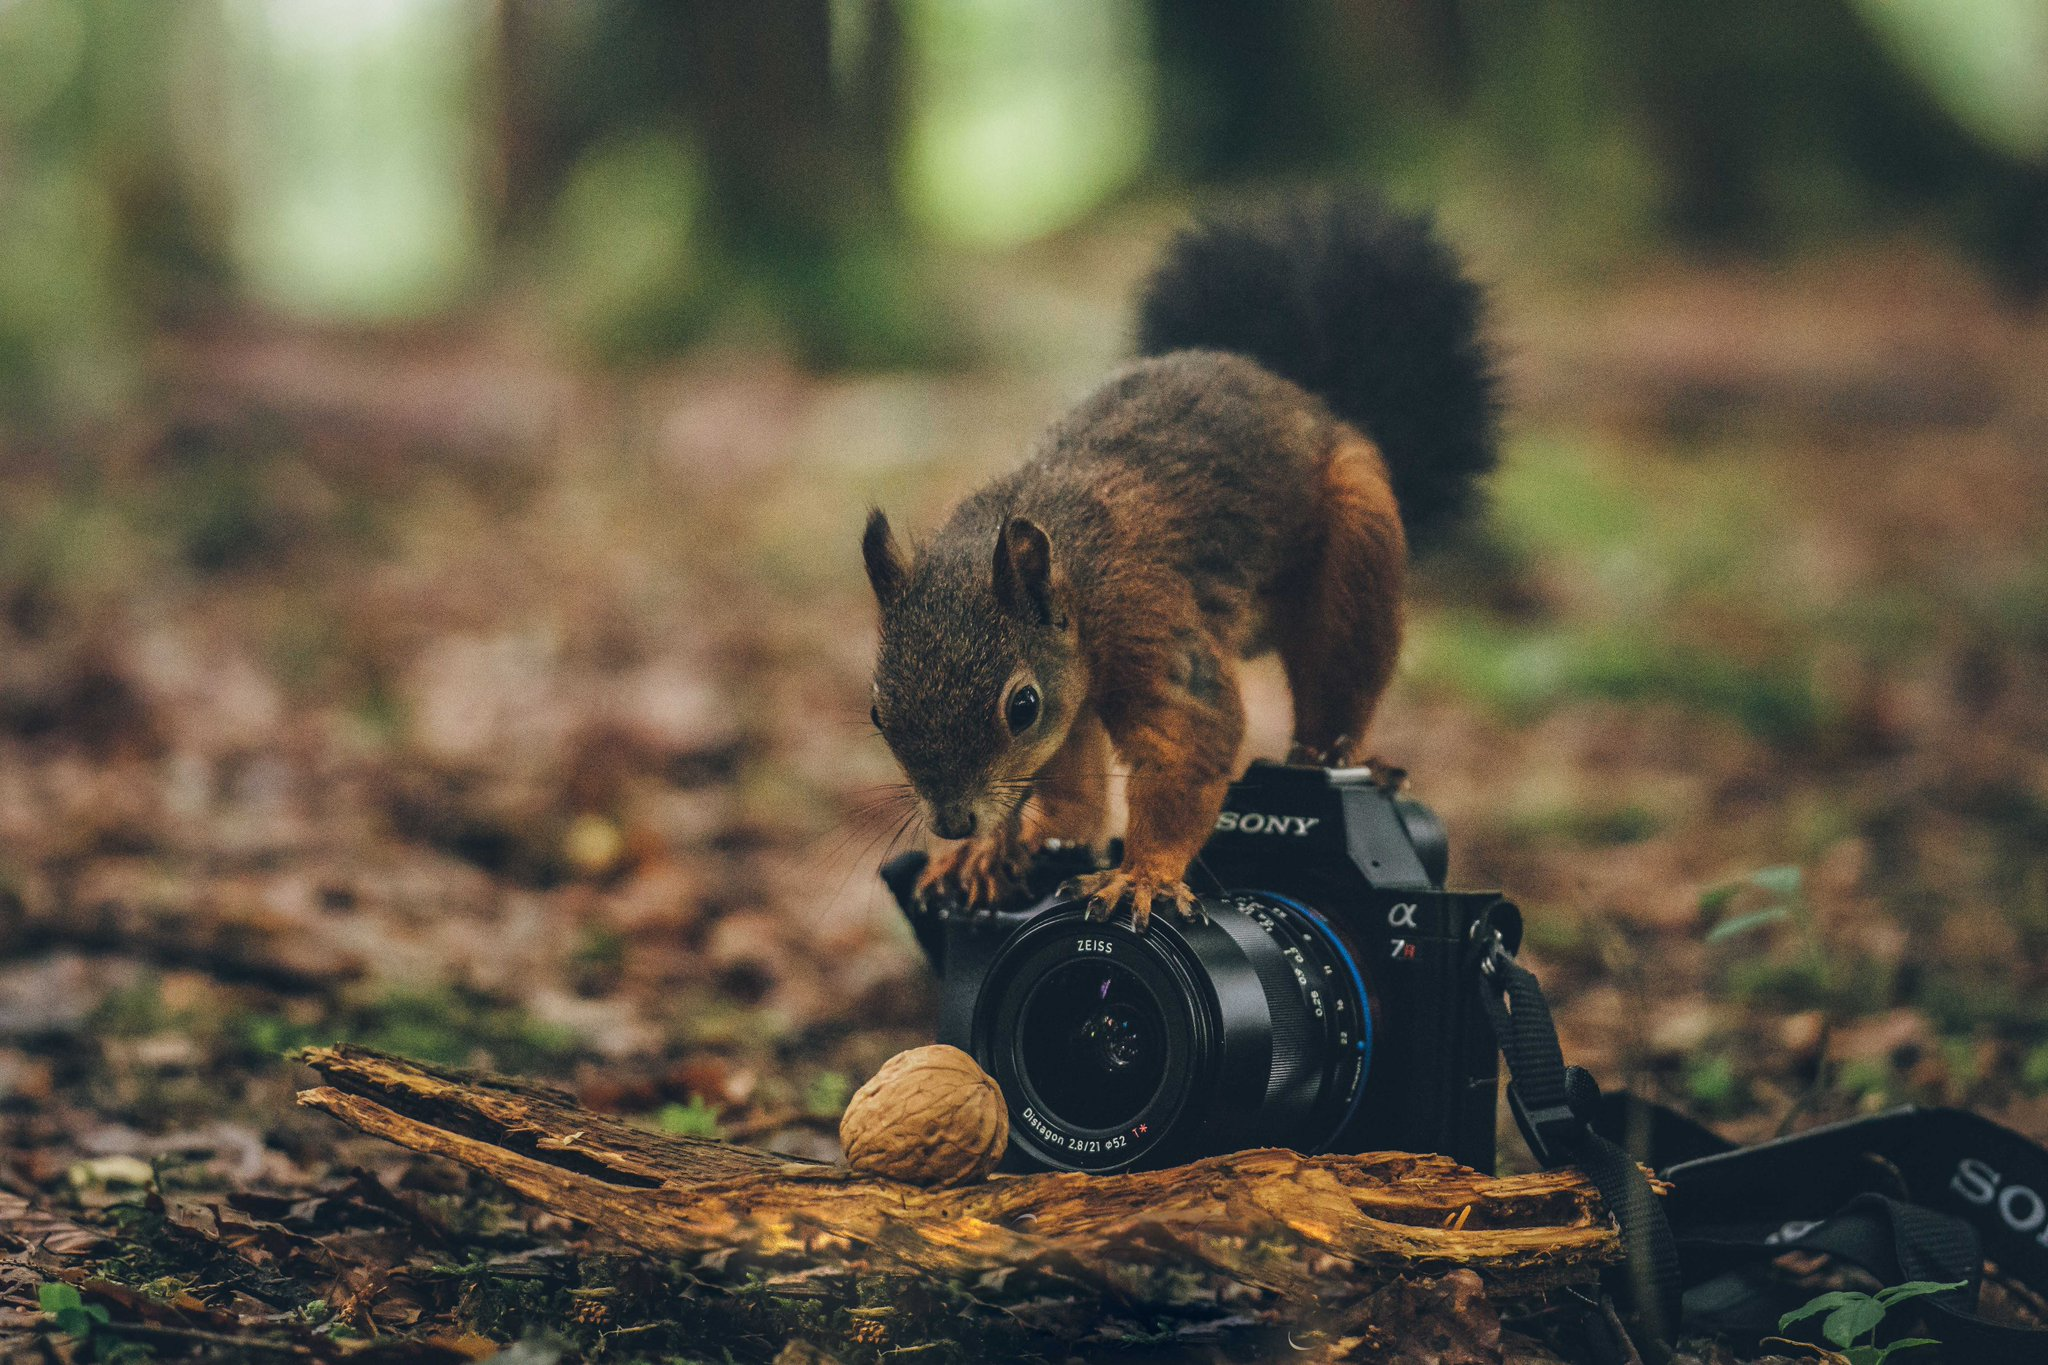 Walking through a Bavarian #forest, landscape #photographer Bruno Günther had the honor to meet another passionate photographer at work. 🐿️ Did you ever take a shot as cute as this one? Show it by using #ZEISSCameraLenses! https://t.co/qhBaroY1rh